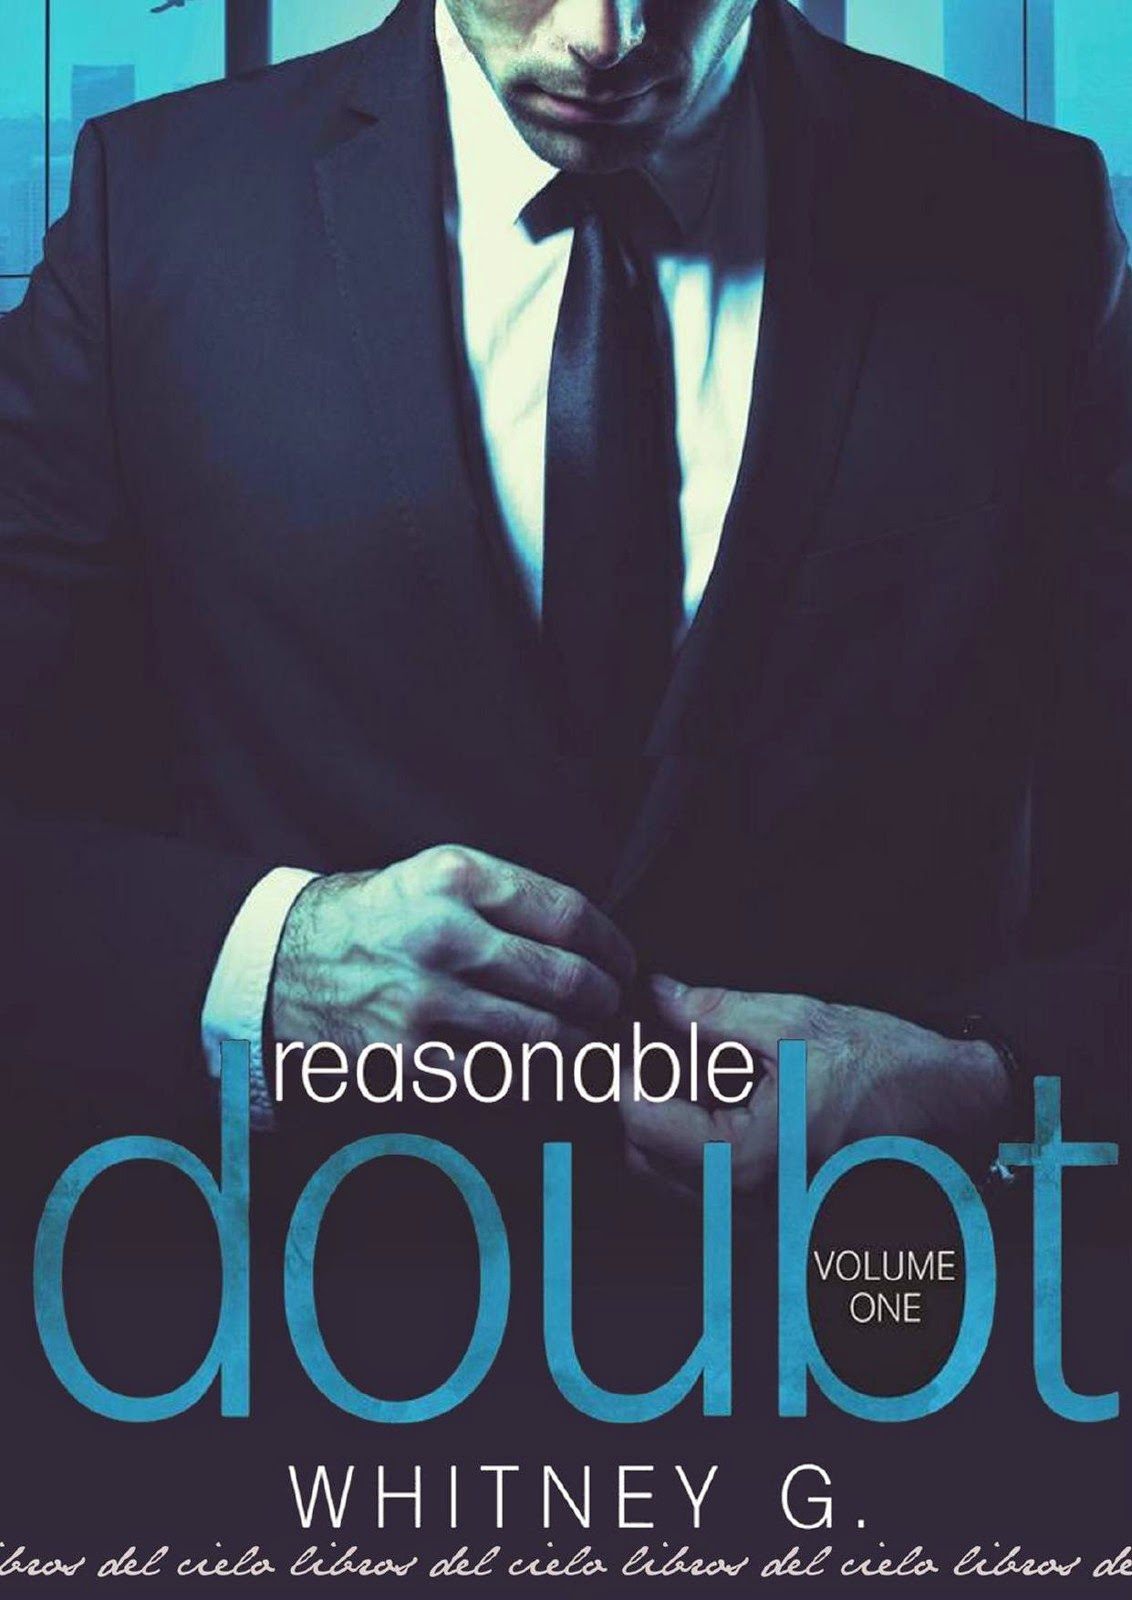 http://bookadictas.blogspot.com/2015/01/saga-reasonable-doubt-vol1-whitney-g-18.html